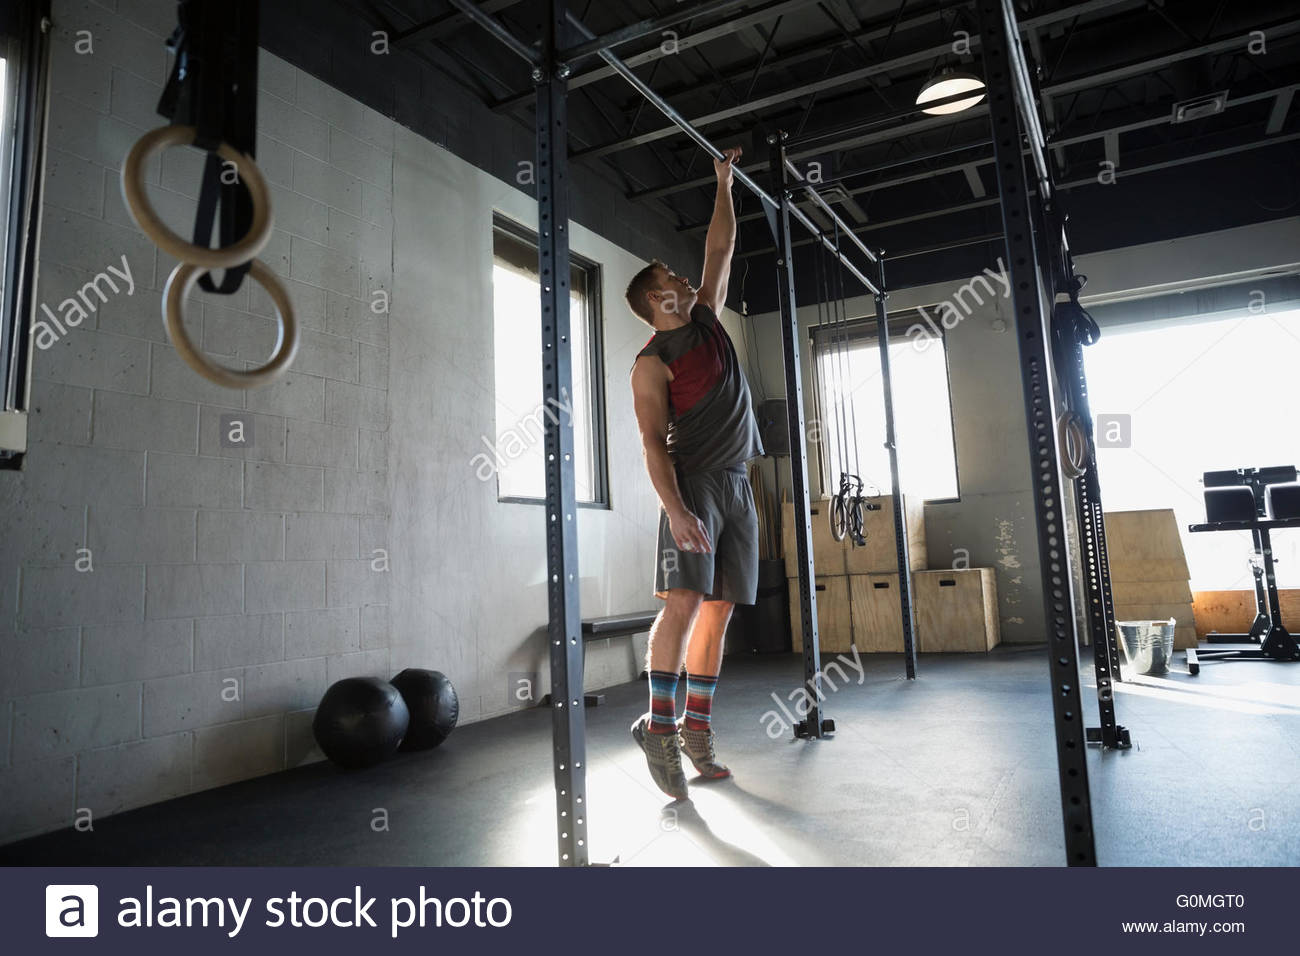 Man doing one-armed pull-ups at gym - Stock Image